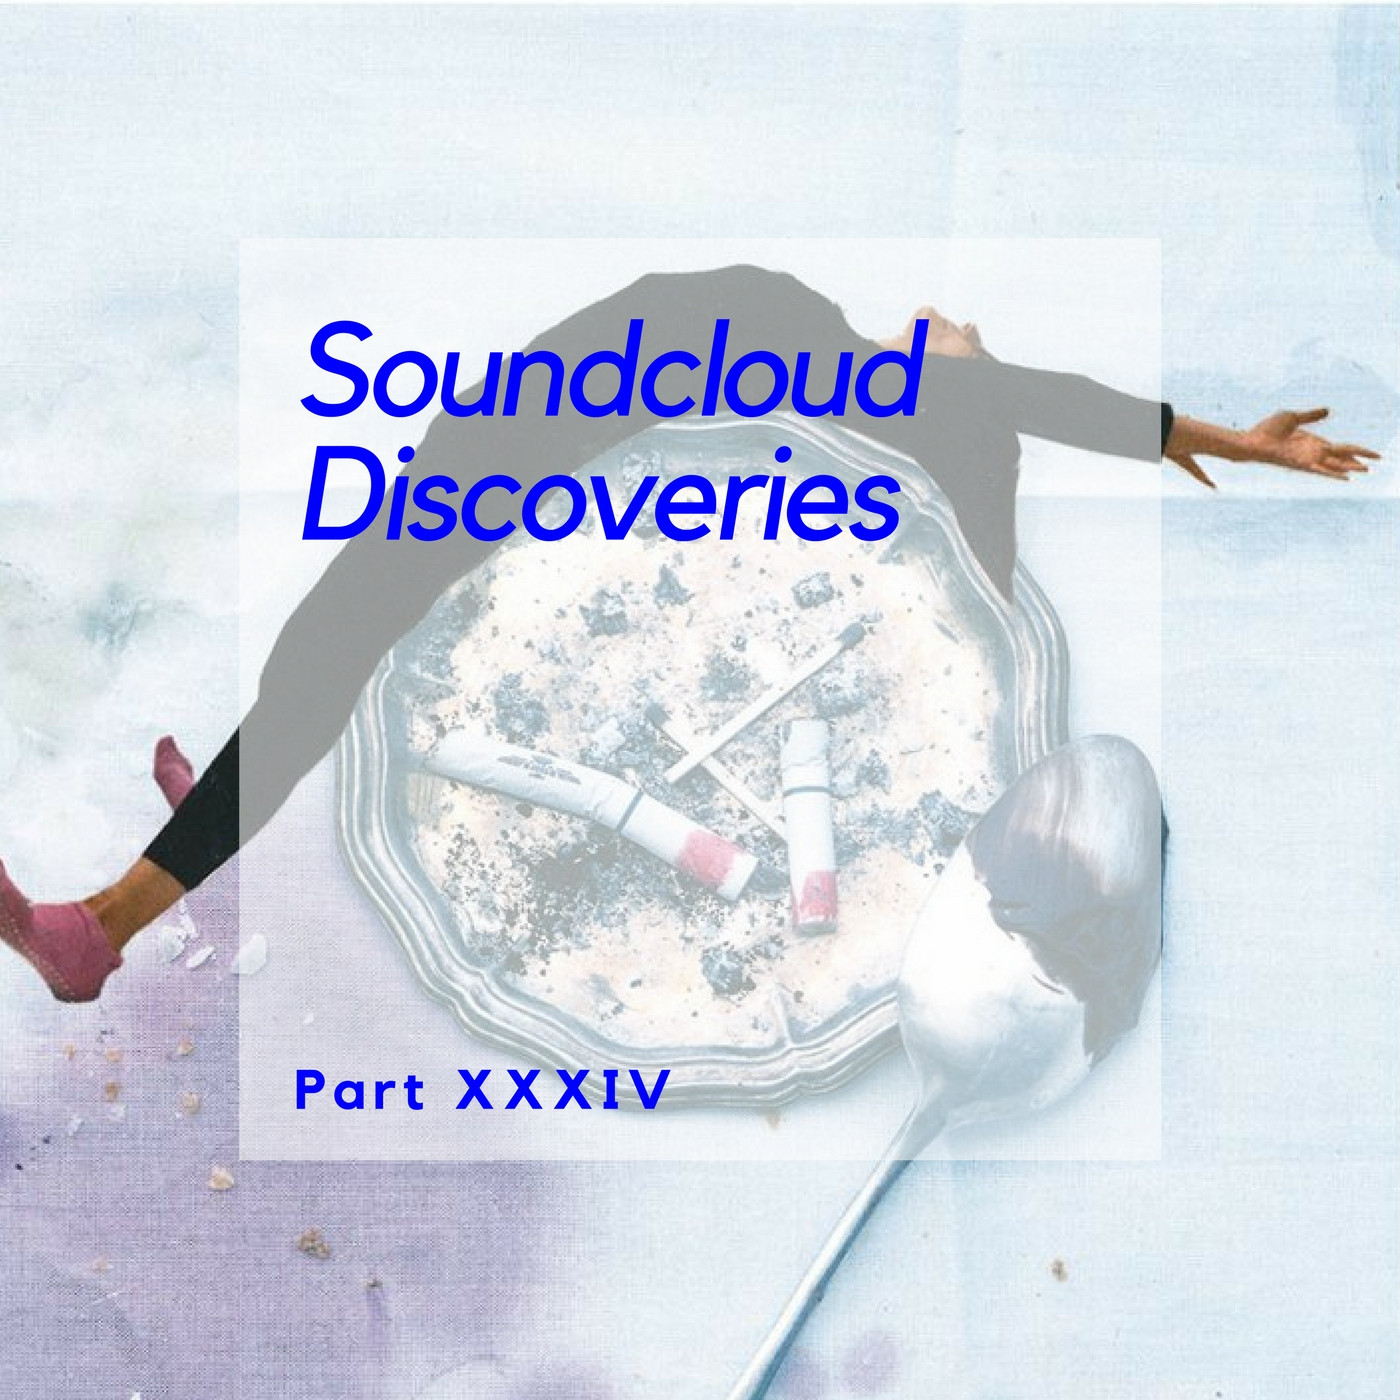 playlist-soundcloud discoveries part xxxiv-indie music-indie rock-indie pop-indie folk-remix-new music-music blog-indie blog-wolfinasuit-wolf in a suit